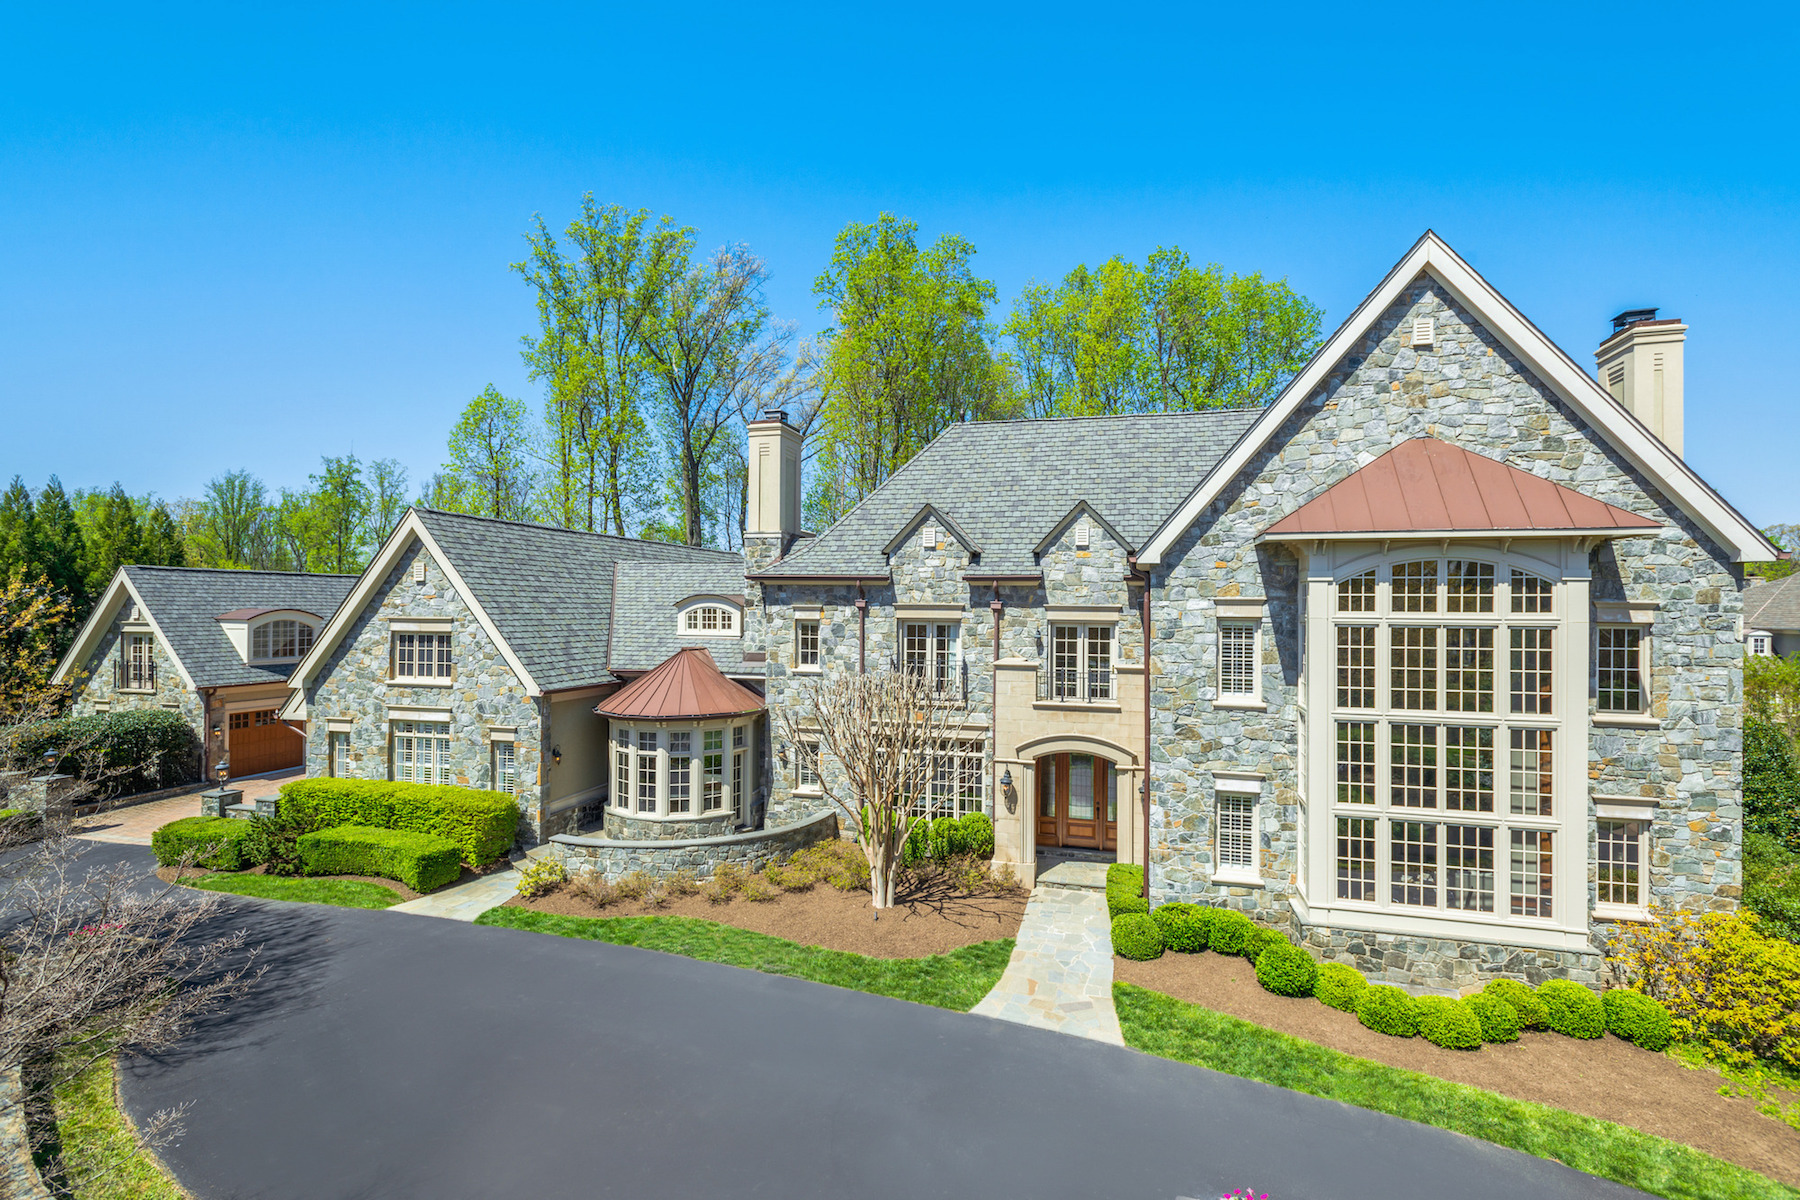 Villa per Vendita alle ore Masterpiece in The Reserve 1017 Founders Ridge Ln McLean, Virginia, 22102 Stati Uniti